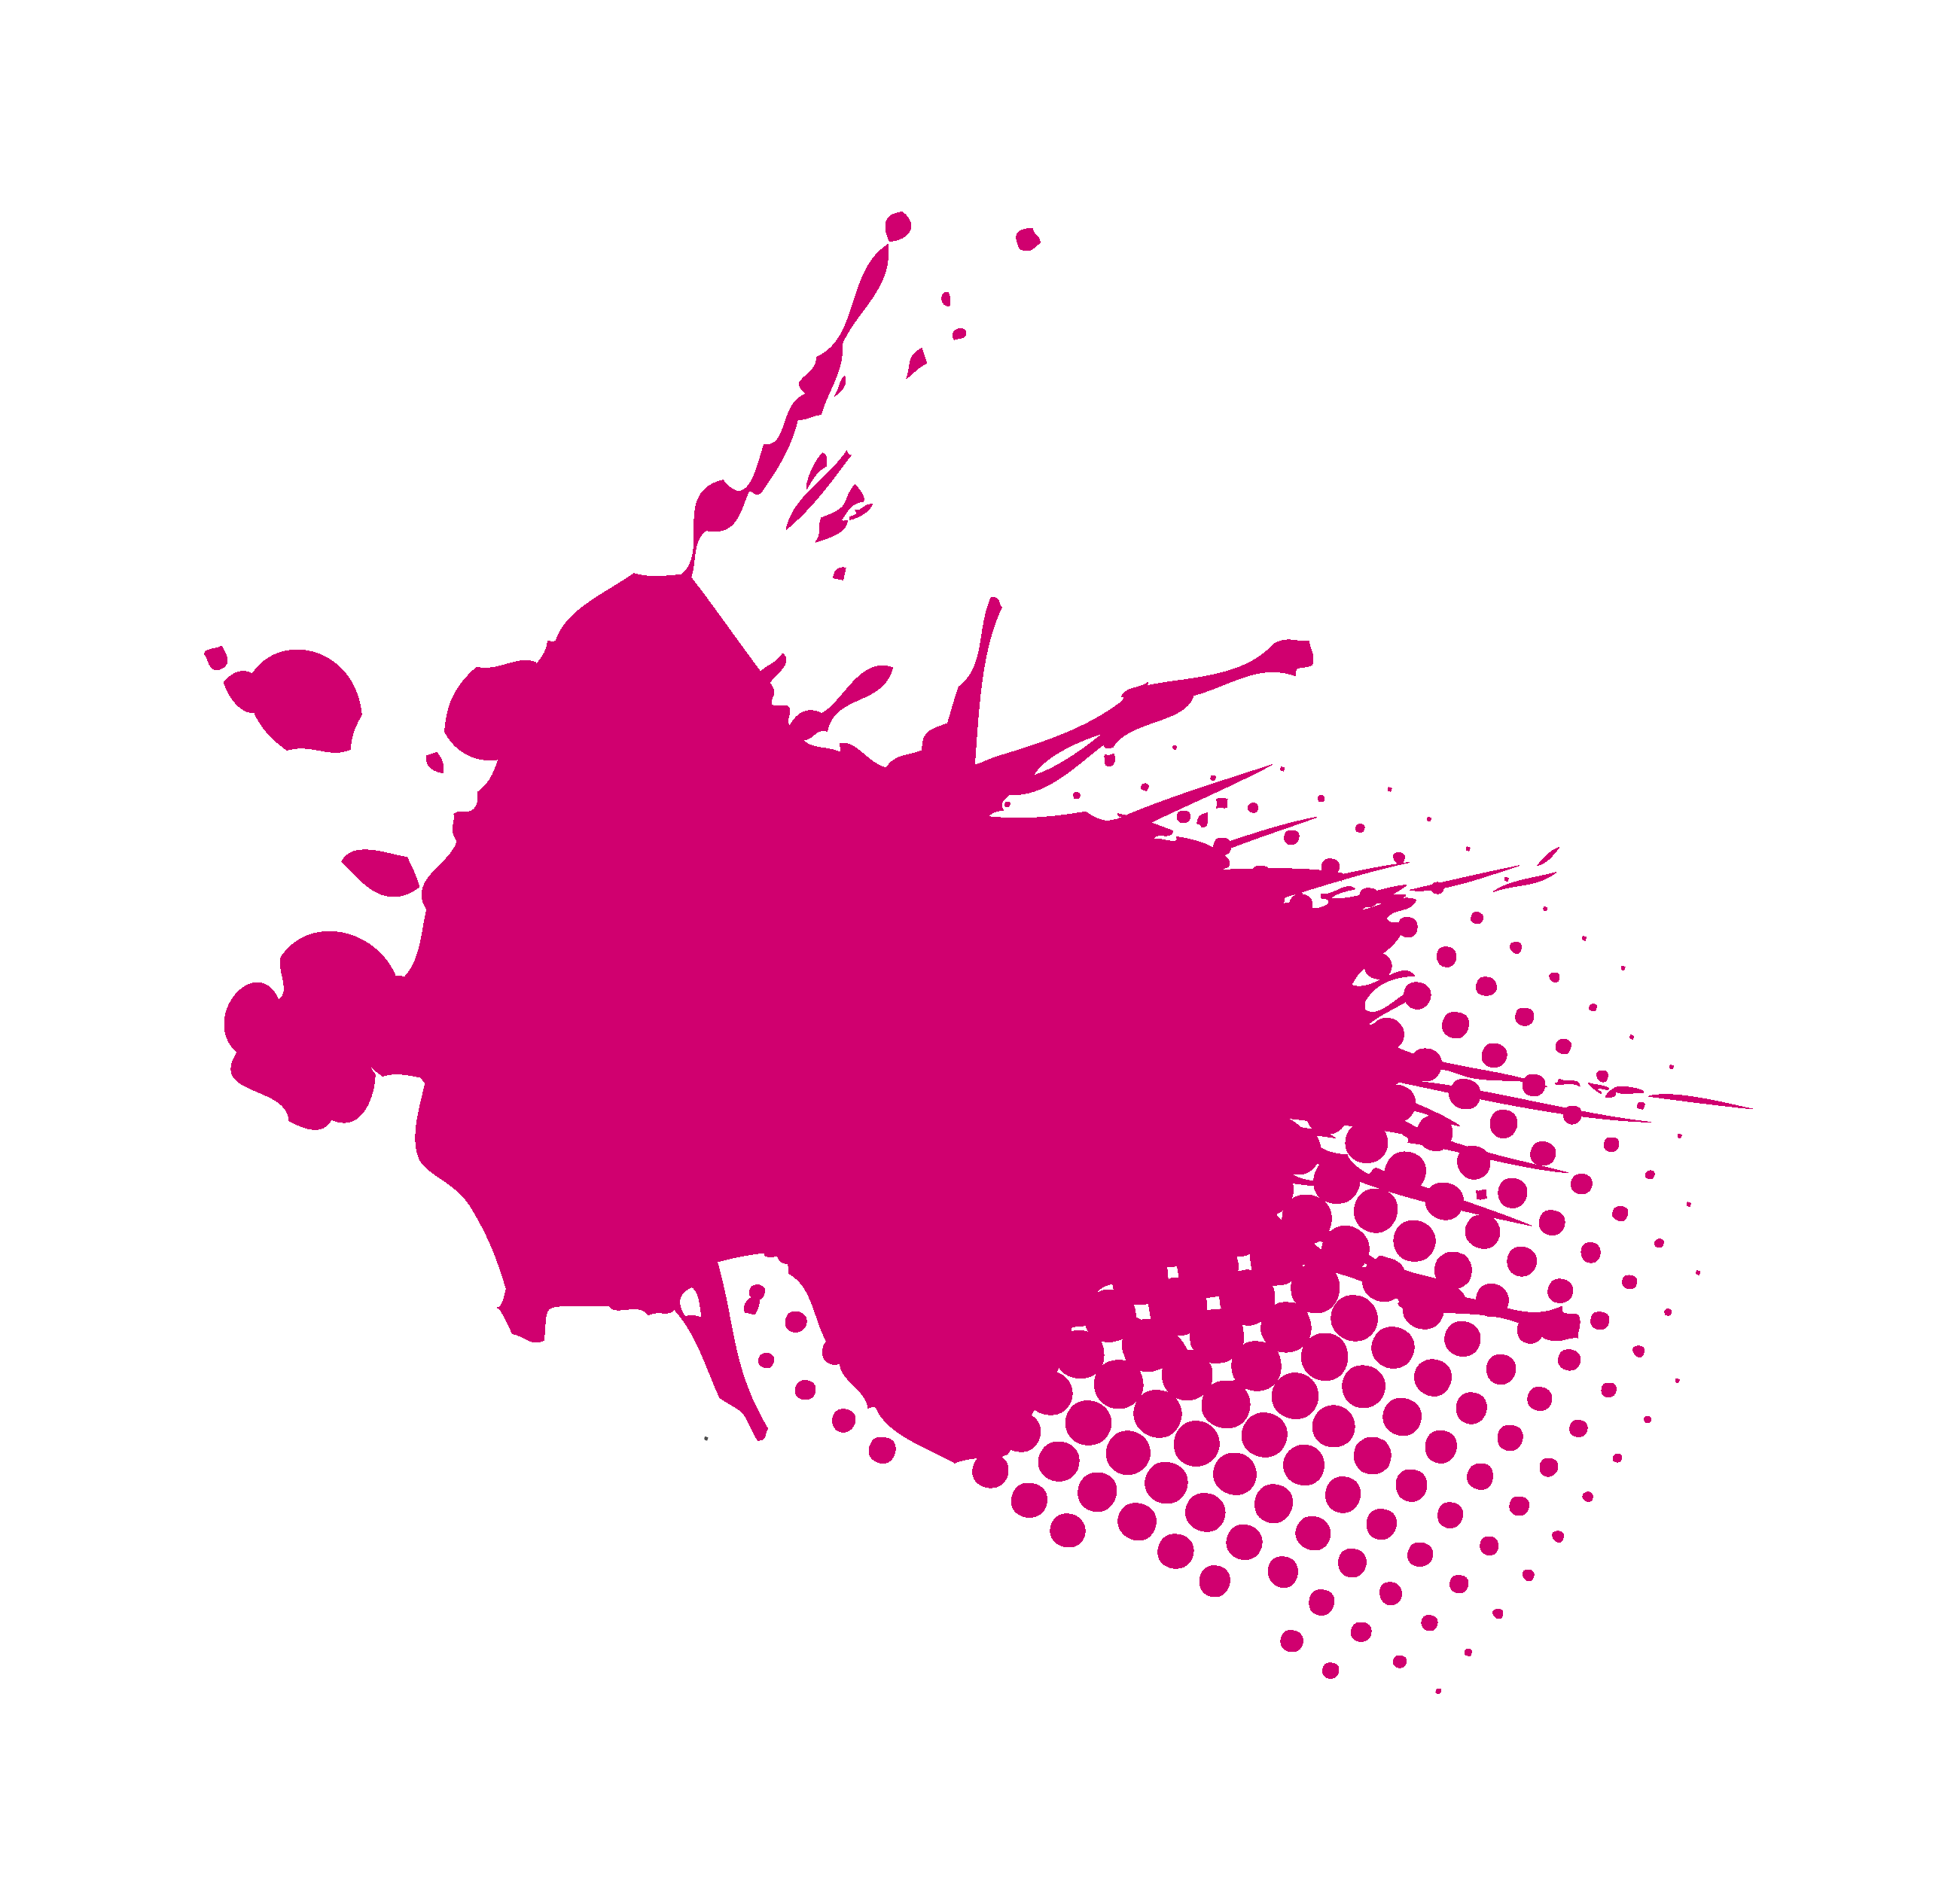 Image showing a pink decorative paint splat